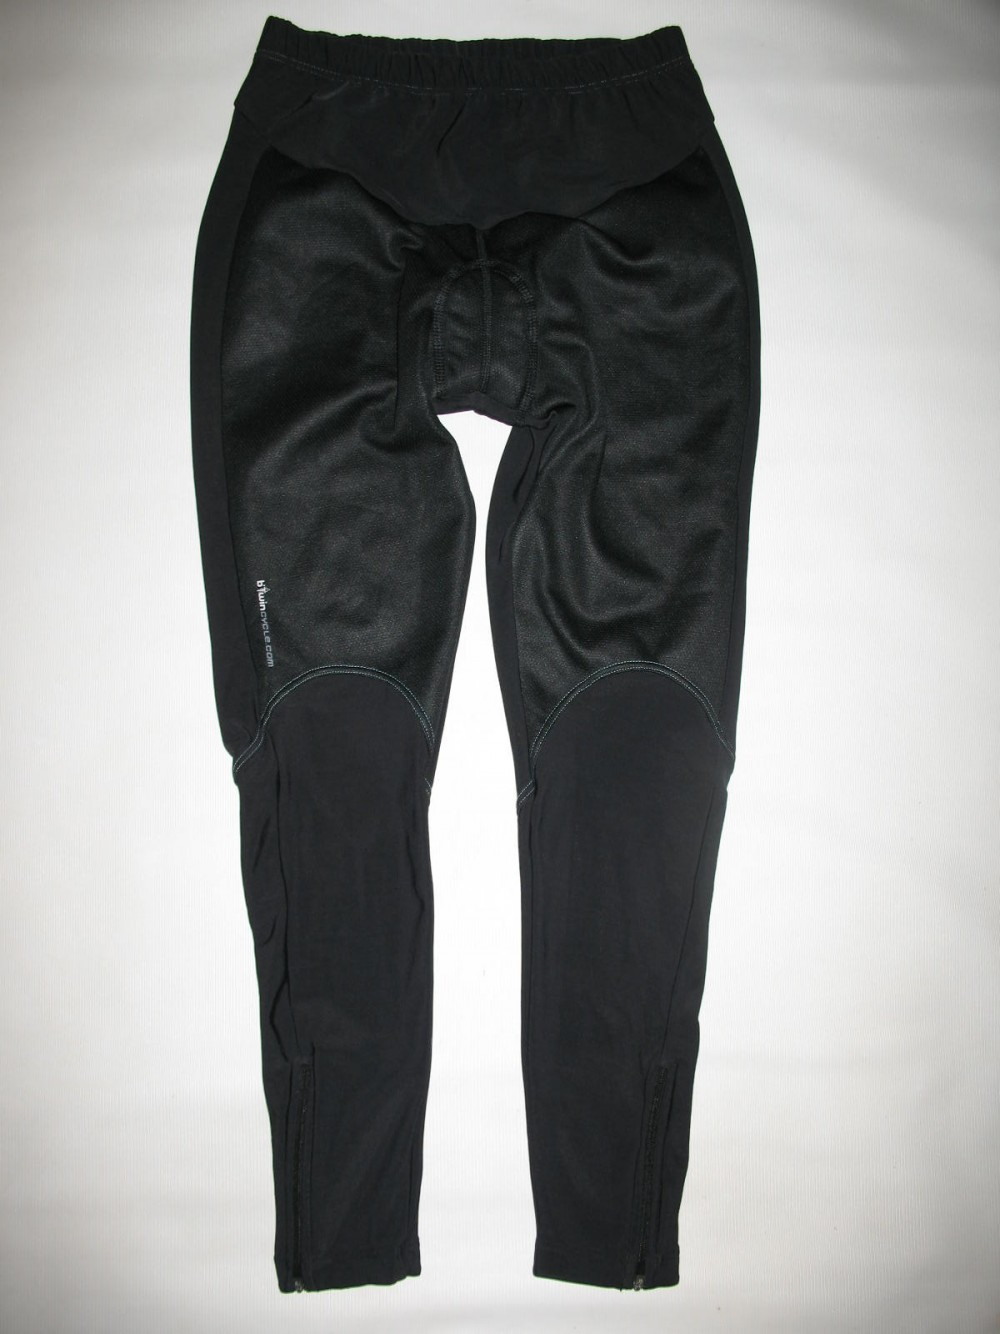 Велобрюки BTWIN collant sport thermal pants lady (размер L/M) - 1